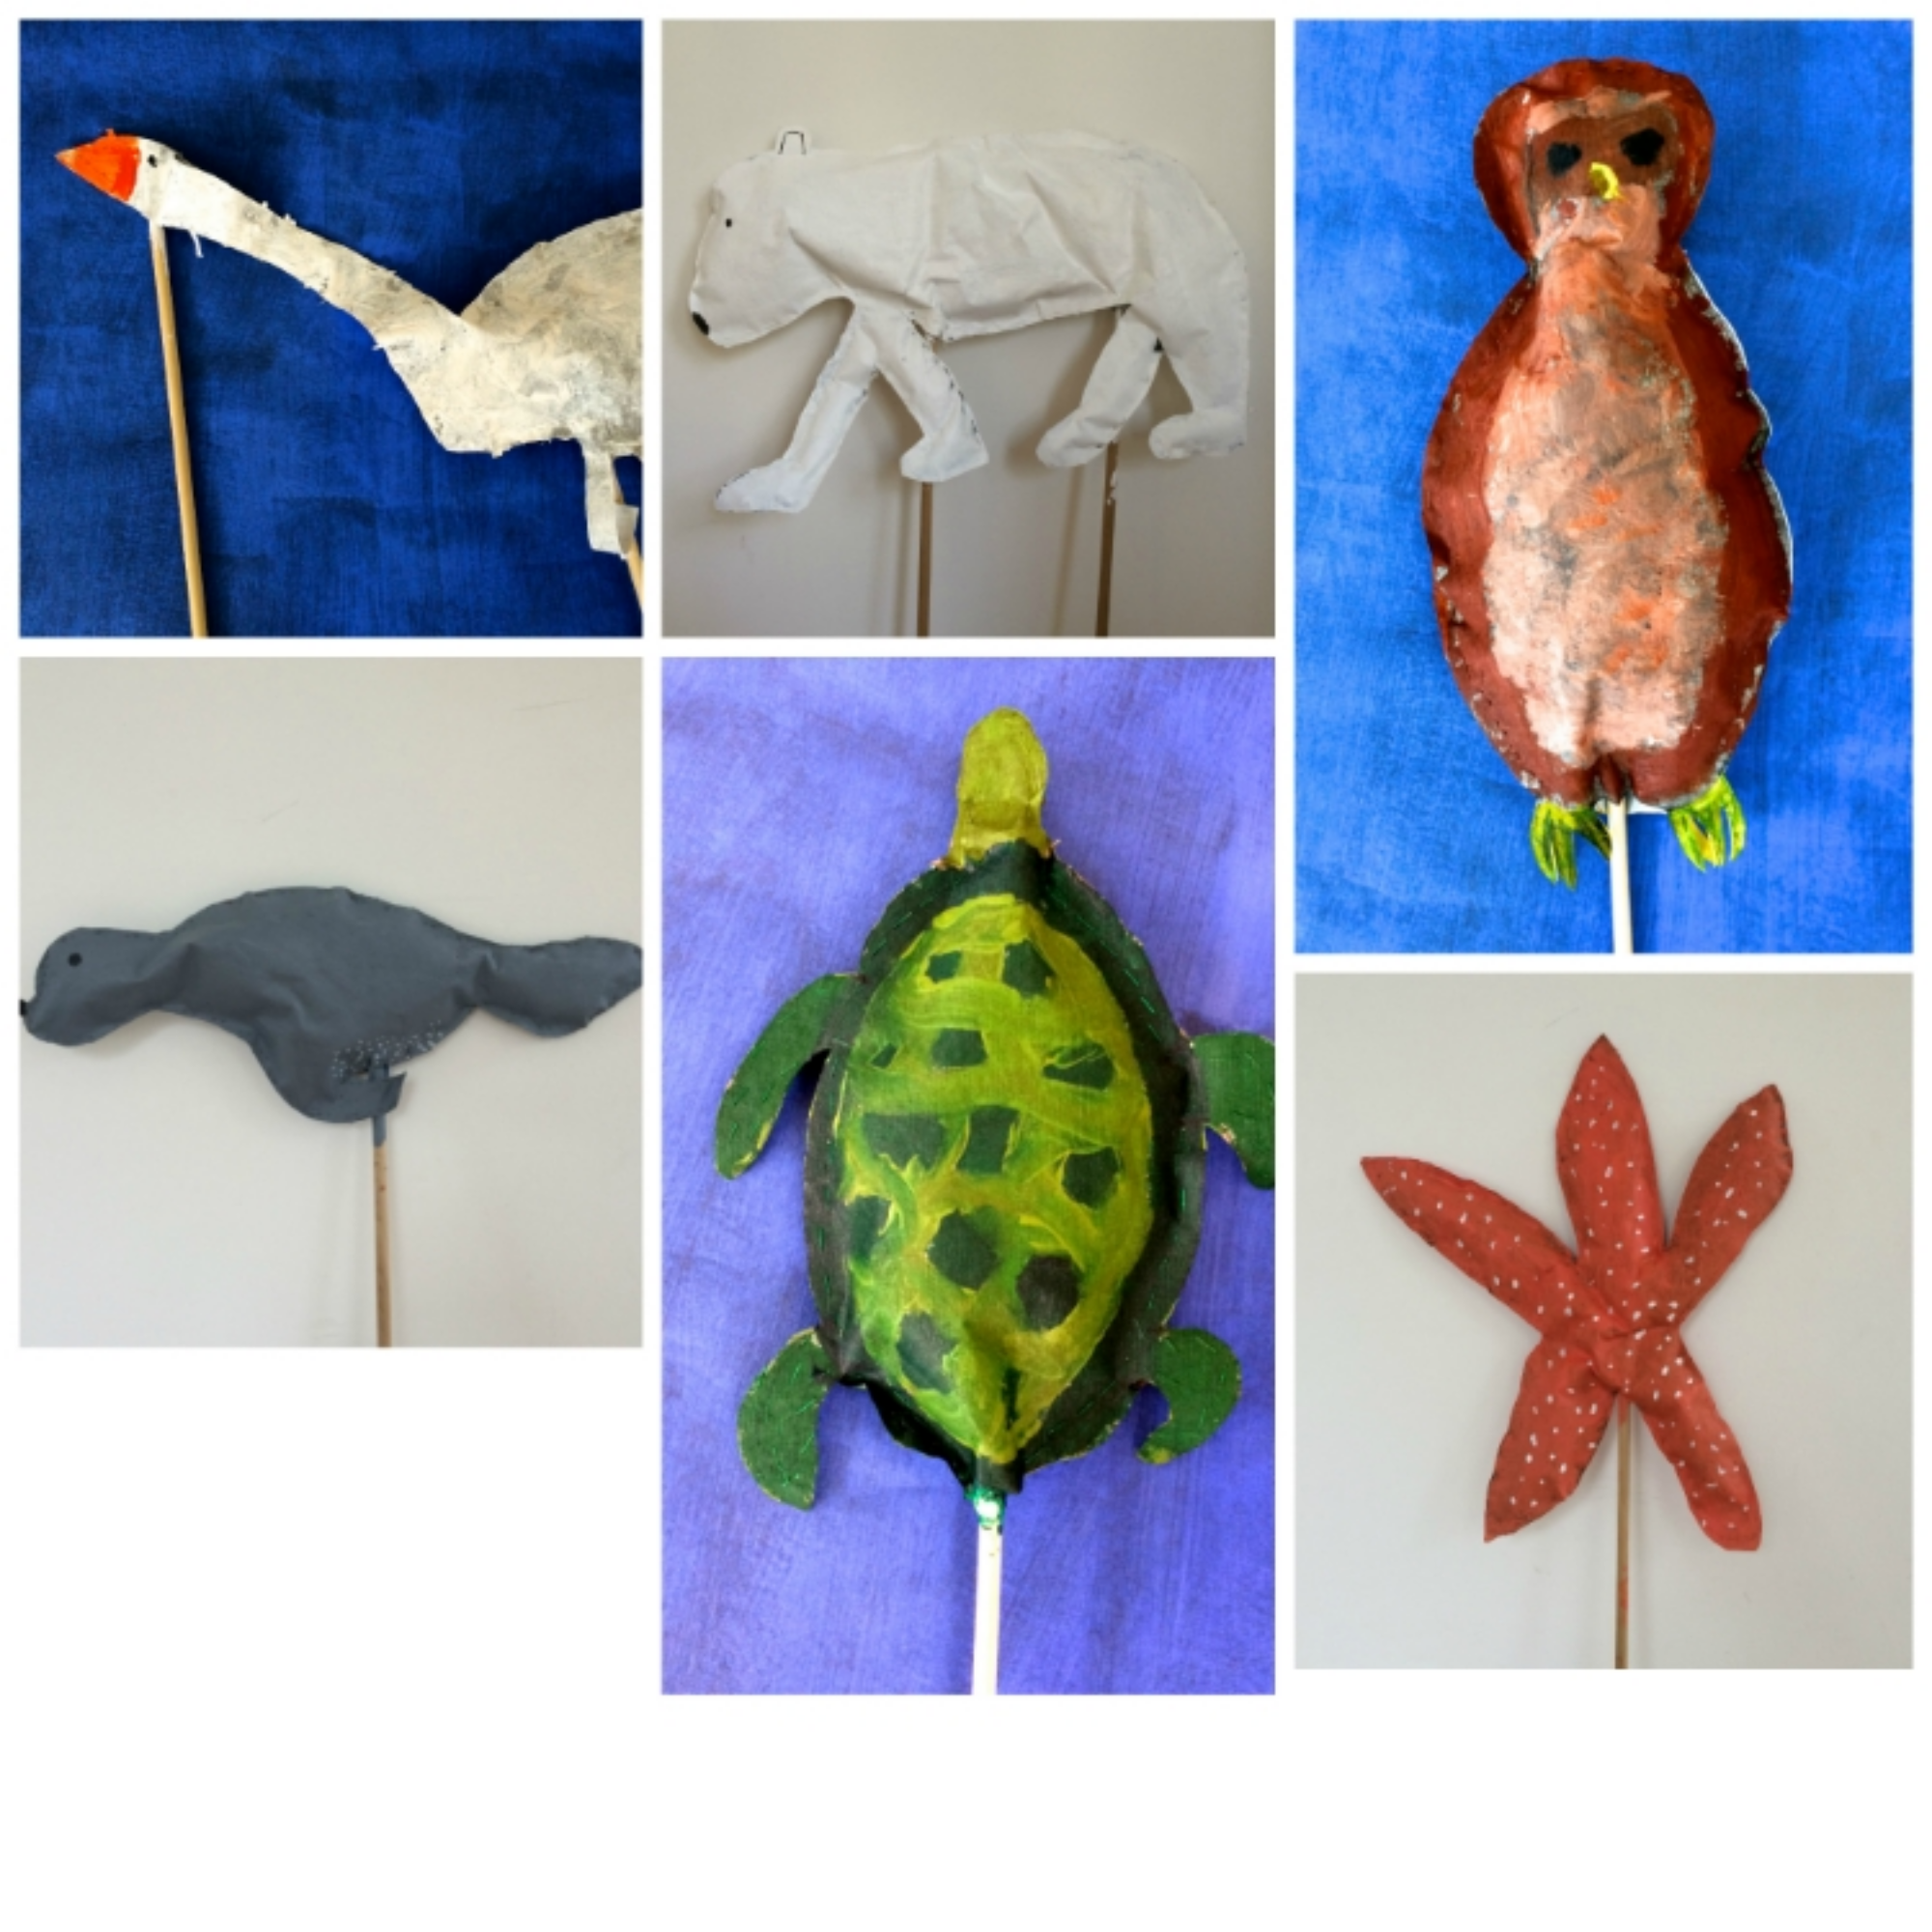 A few of the Animal Parade Puppets made by the Green Monsters in 2015